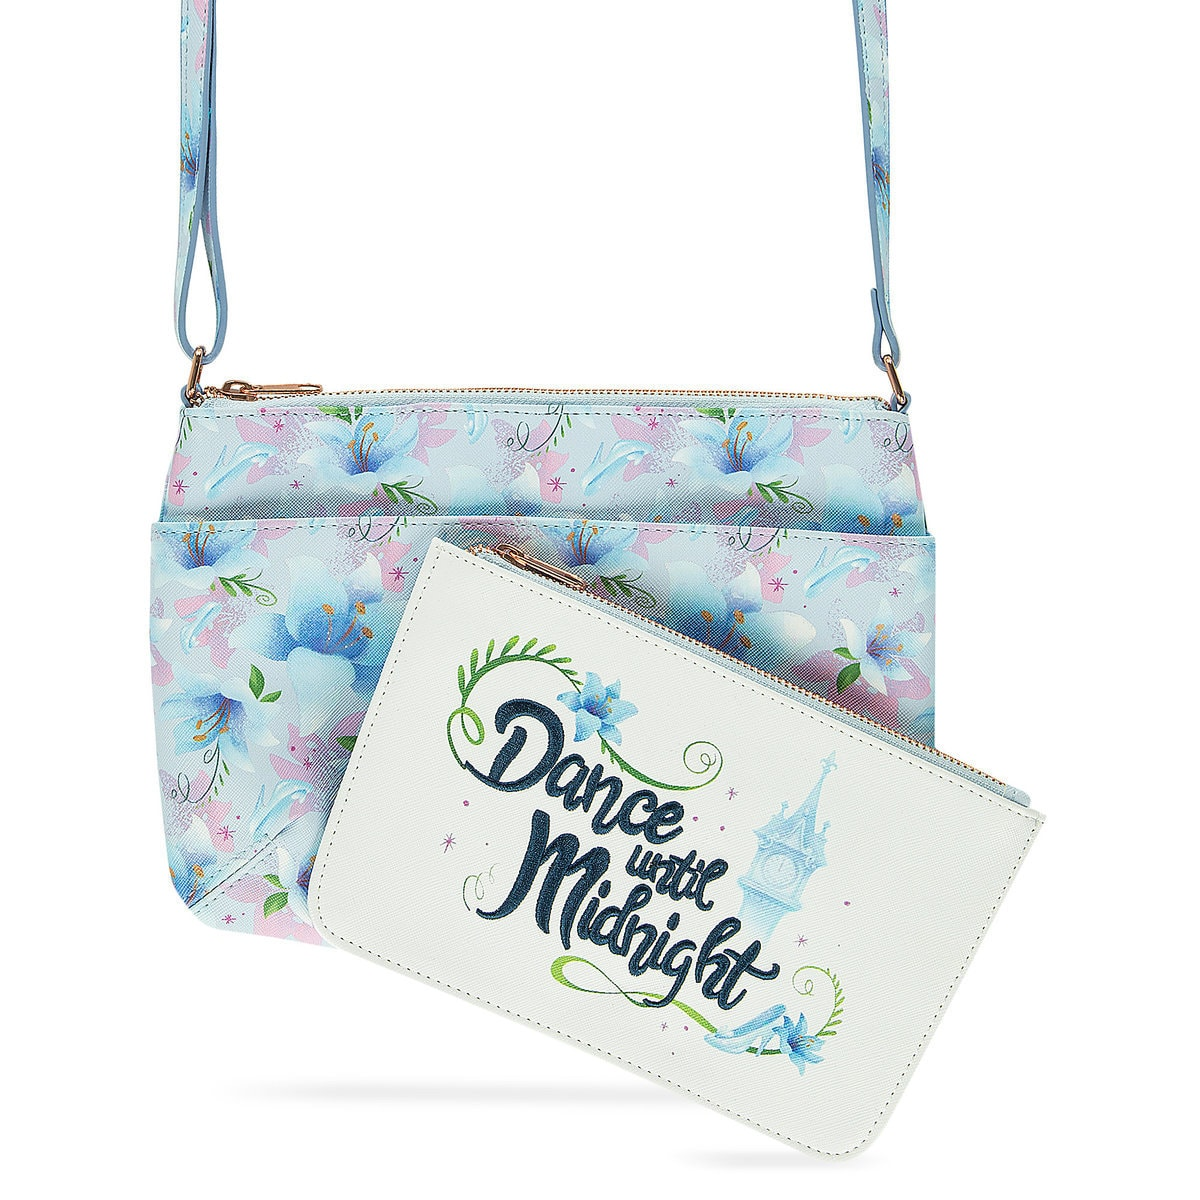 a79d384d0c82 Disney Princess Purse Set - New image Of Purse